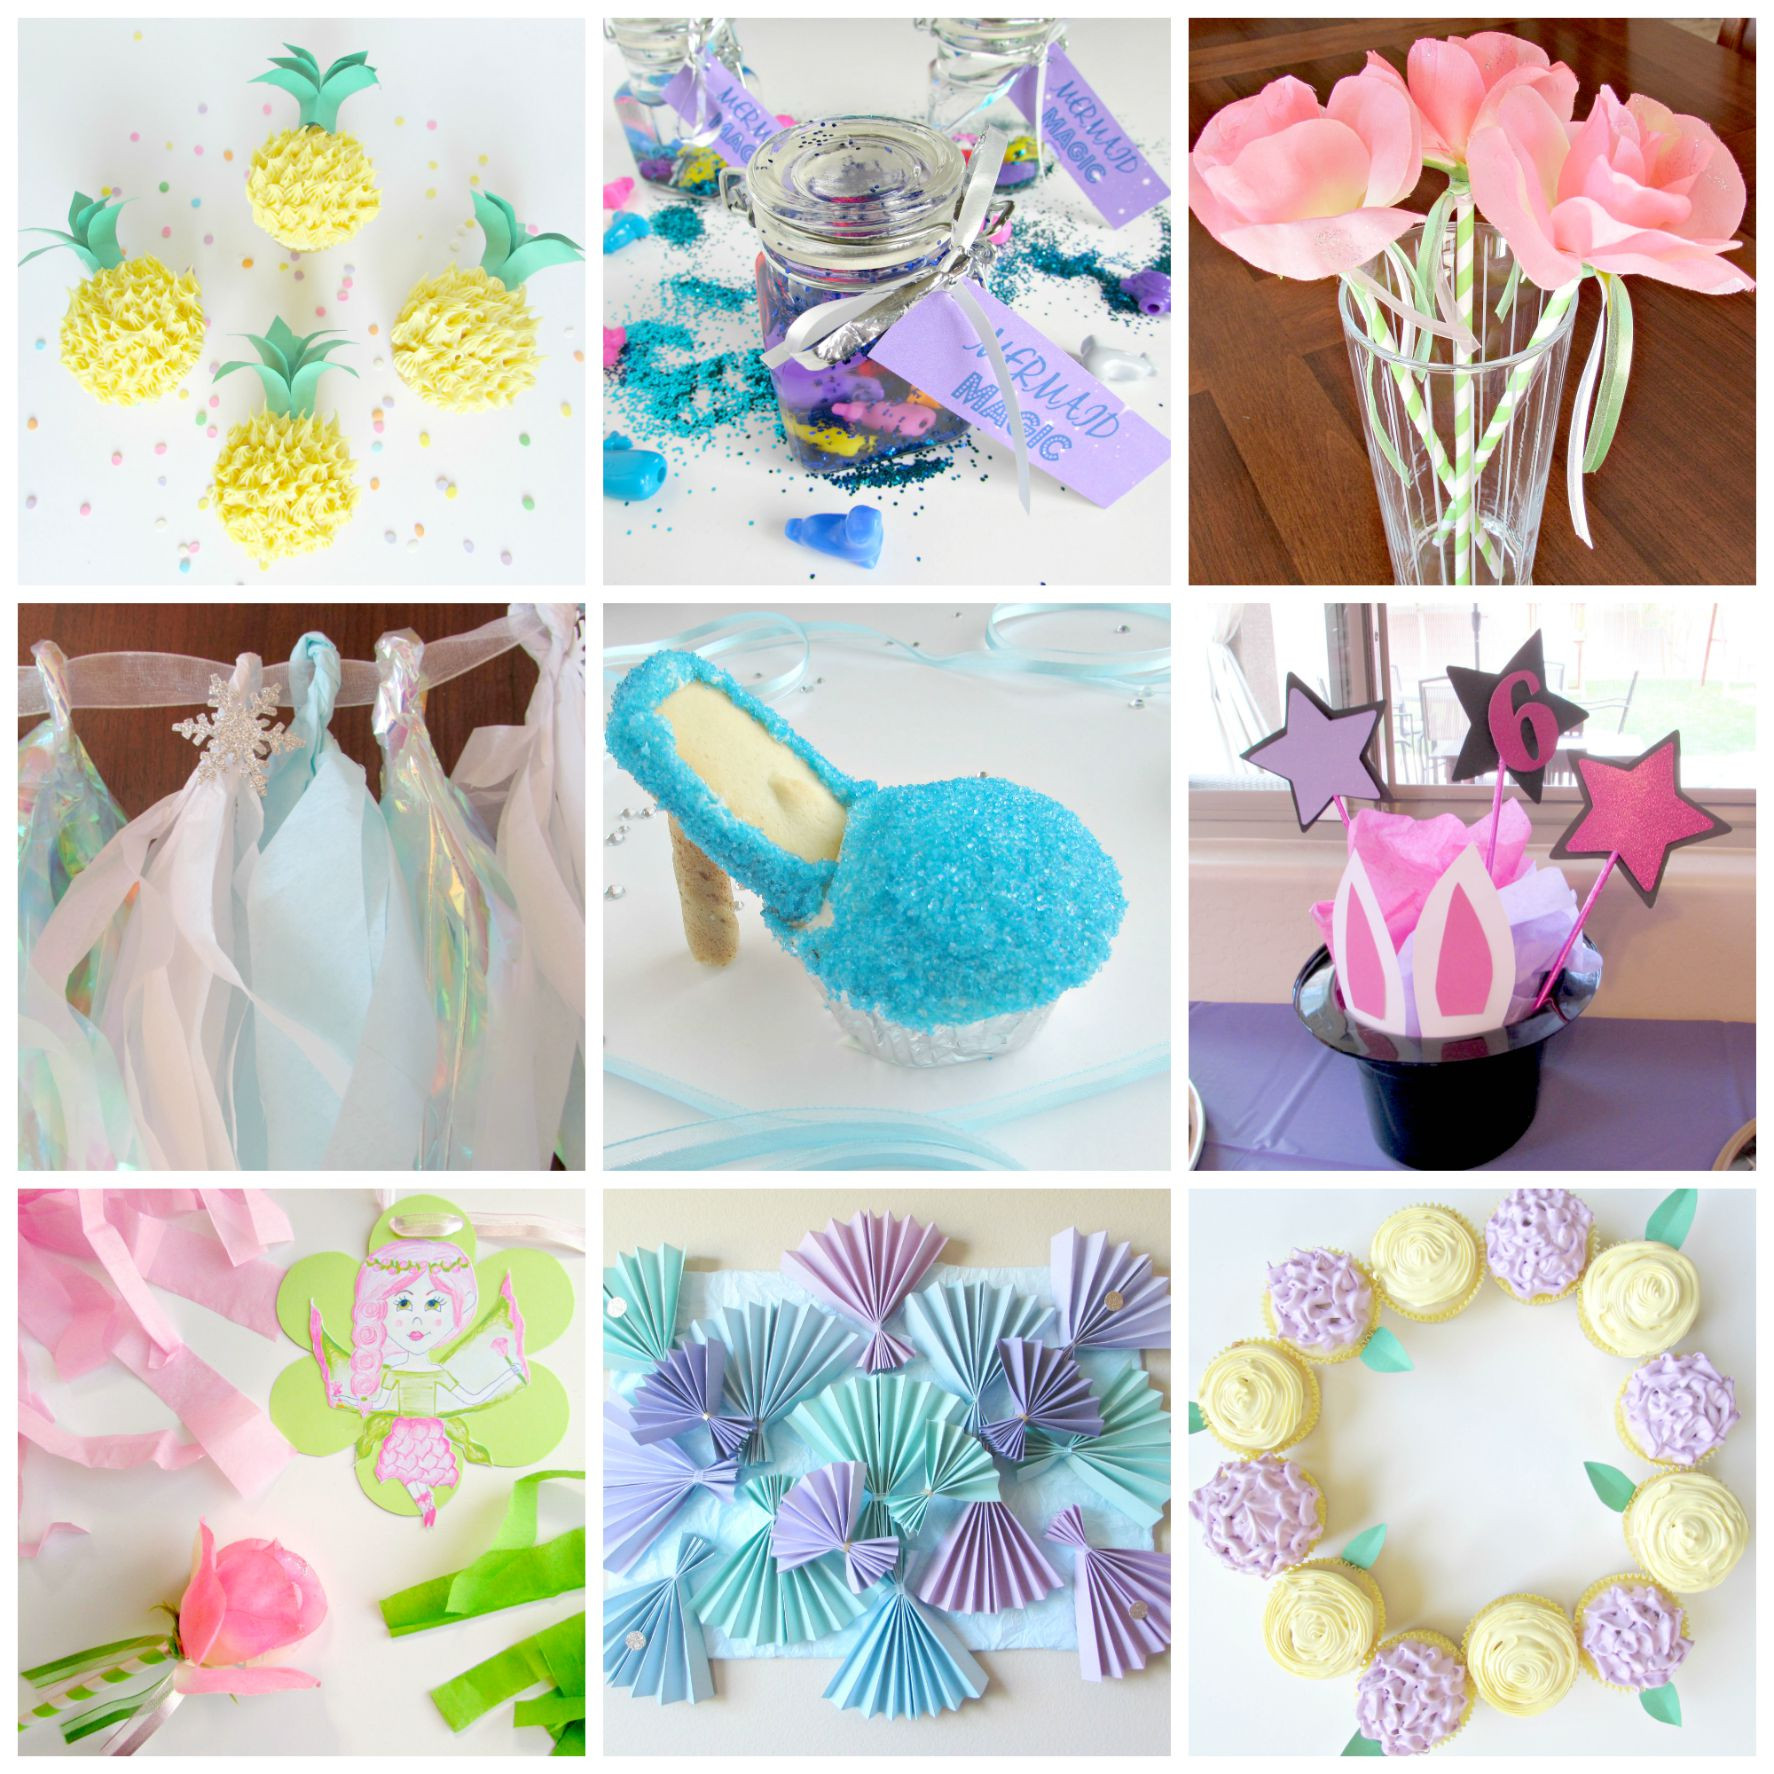 Best ideas about Diy Birthday Party Decorations . Save or Pin Contact & Services Val Event Gal Now.